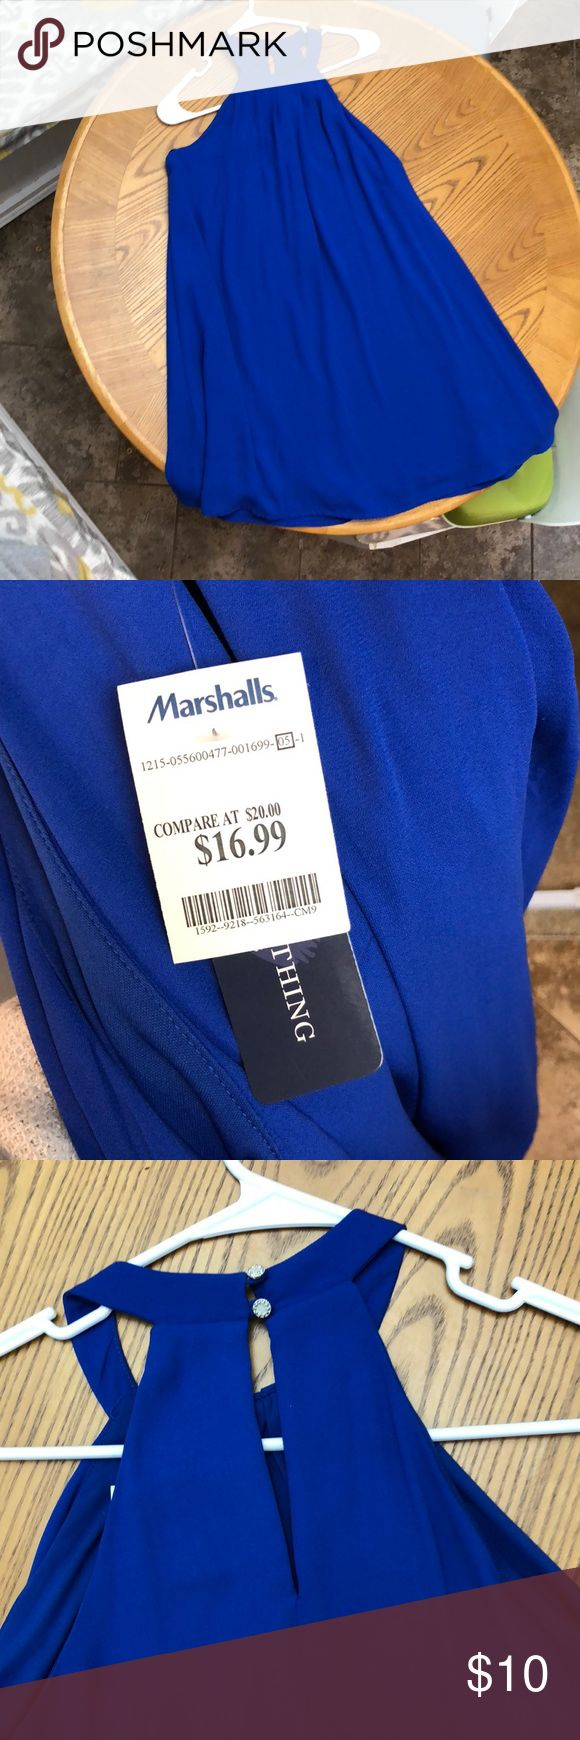 NWT Blue cocktail dress from Marshall's This dress is so stinking adorable! It would be perfect for so many occasions! Vibrant blue shift dress. Perfect and very comfortable. Would go well with that trusty pair of black wedges Marshalls Dresses